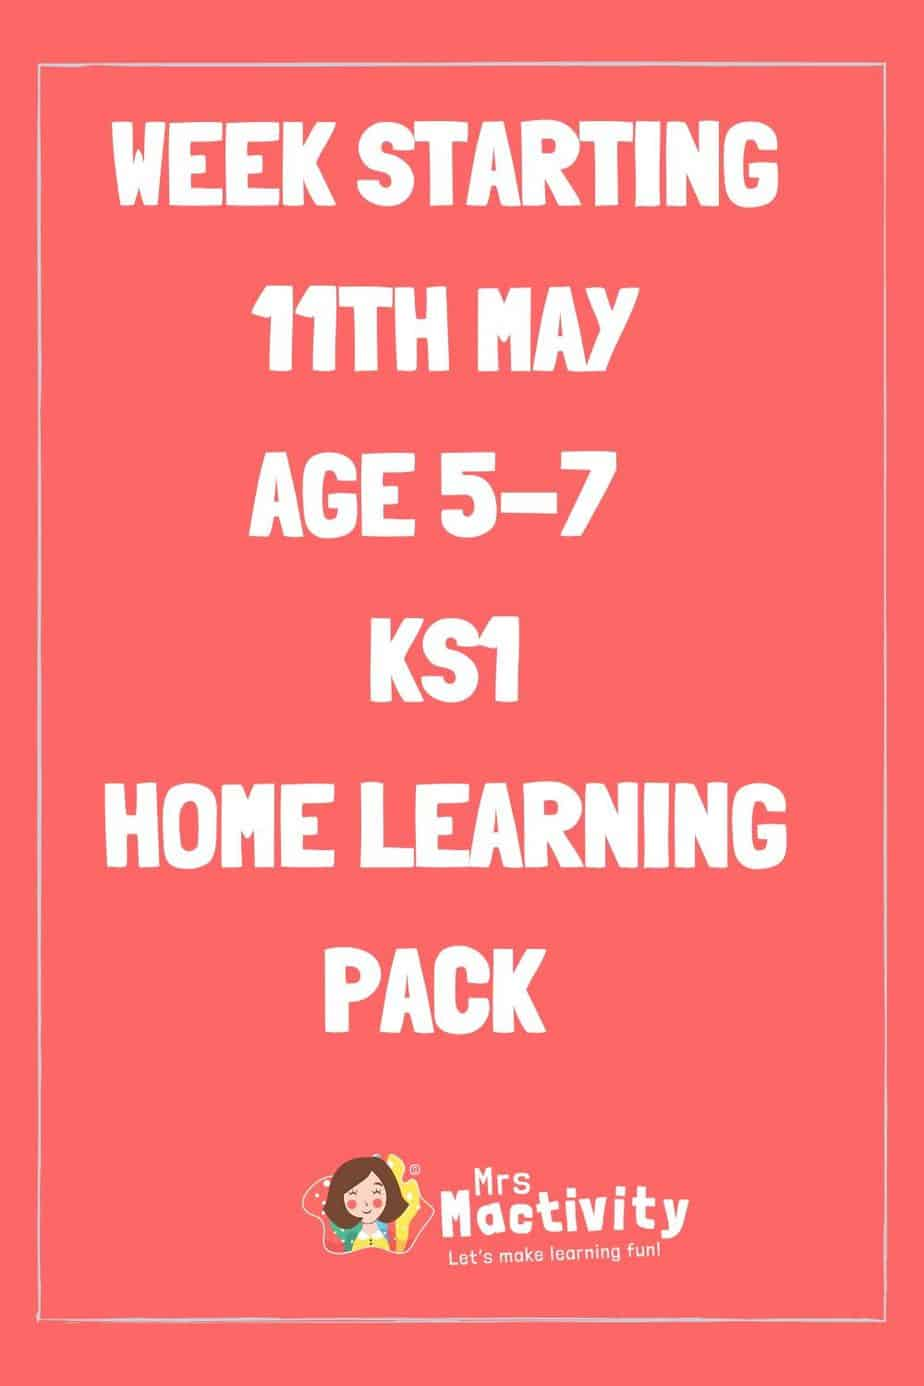 11th May KS1 (Age 5-7) Weekly Home Learning Pack